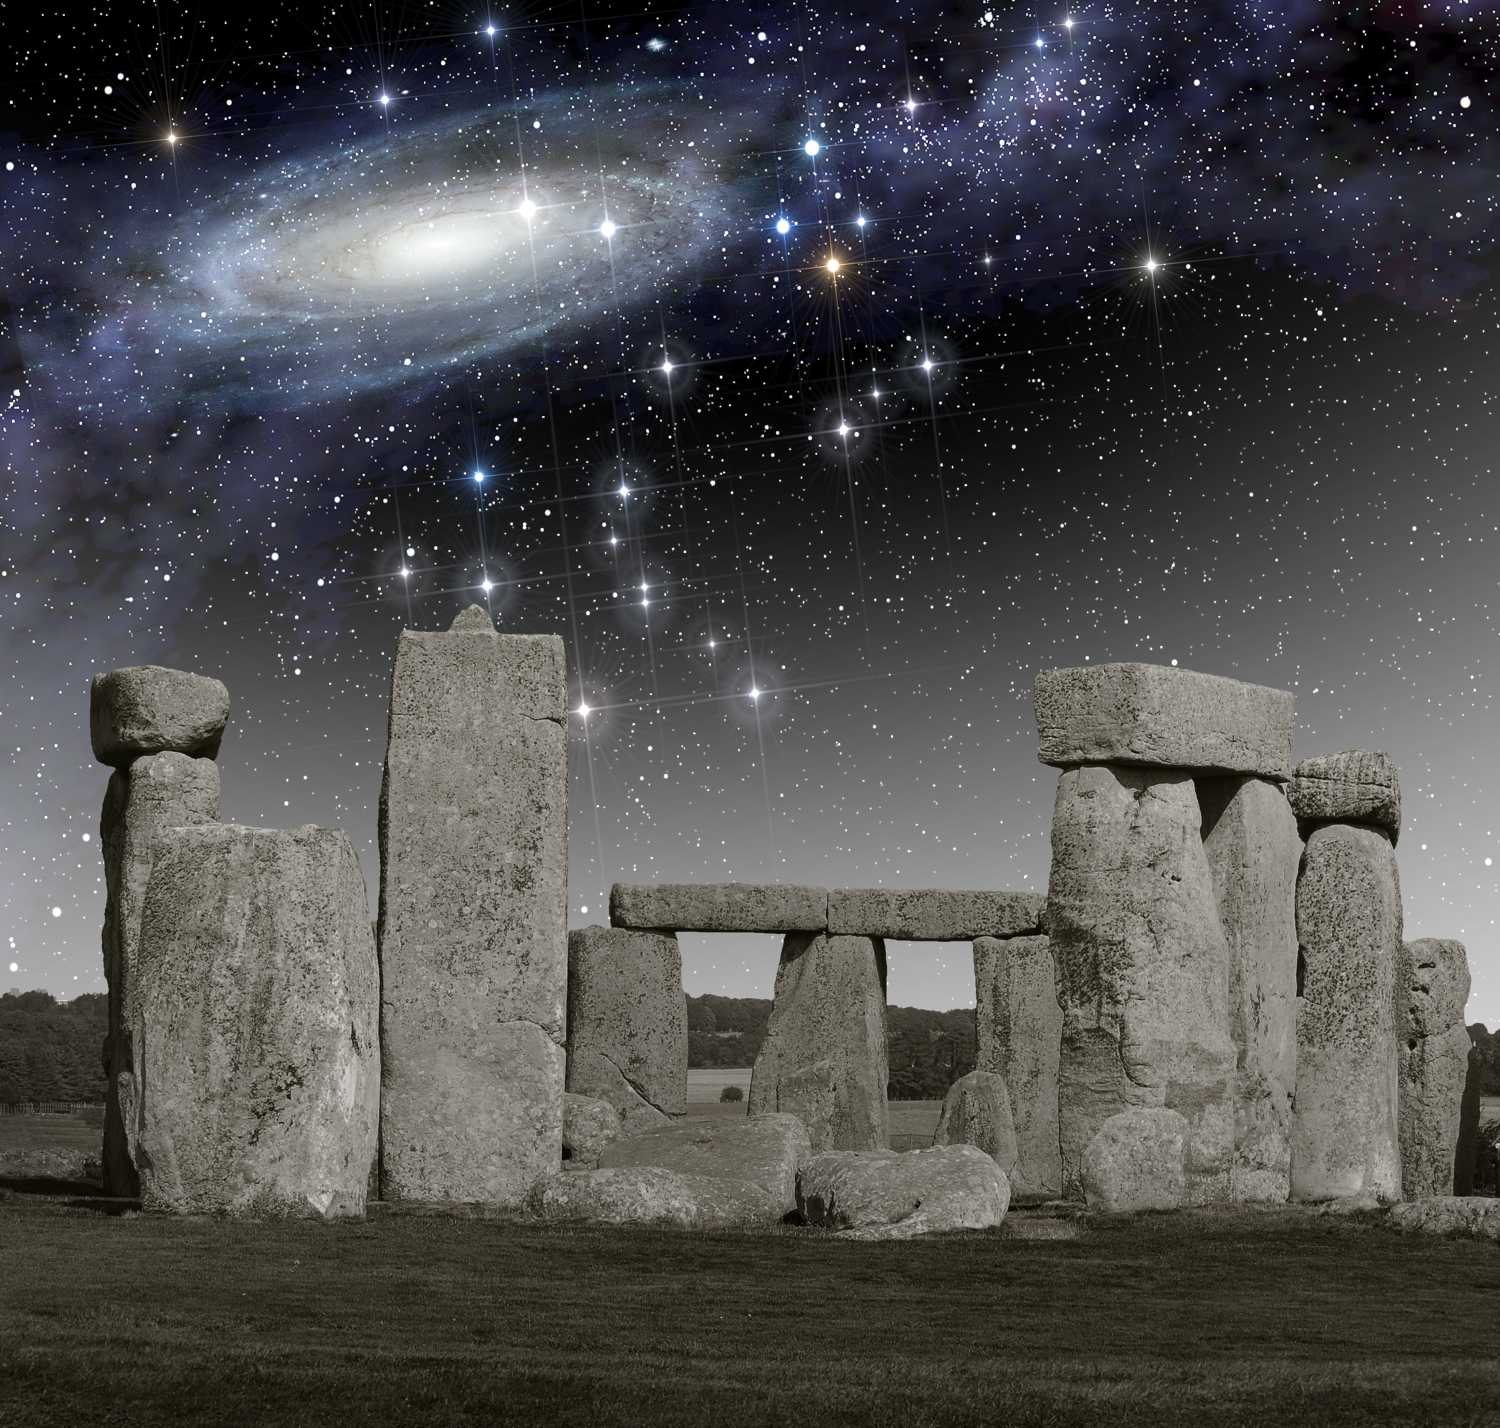 The monument of Stonehenge in front of a primordial deep space.